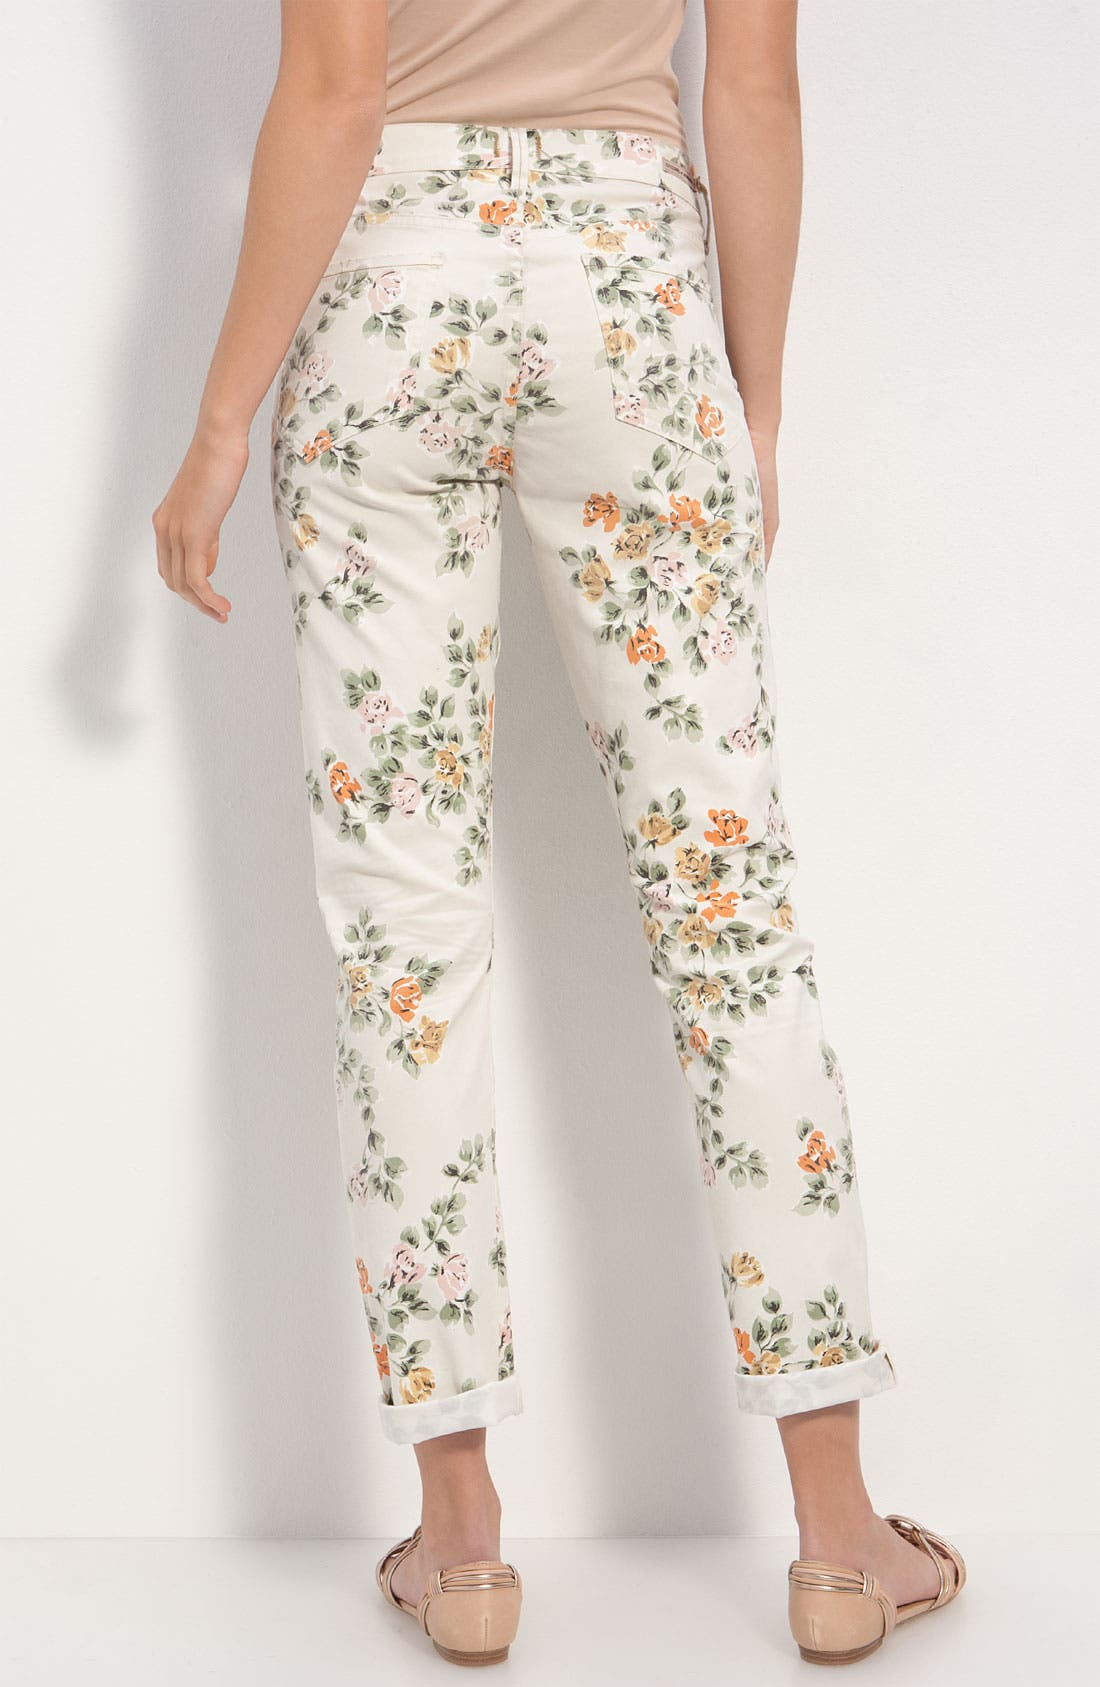 Alternate Image 1 Selected - Citizens of Humanity 'Mandy' High Waist Slim Leg Floral Print Jeans (Natural Petite Rose)